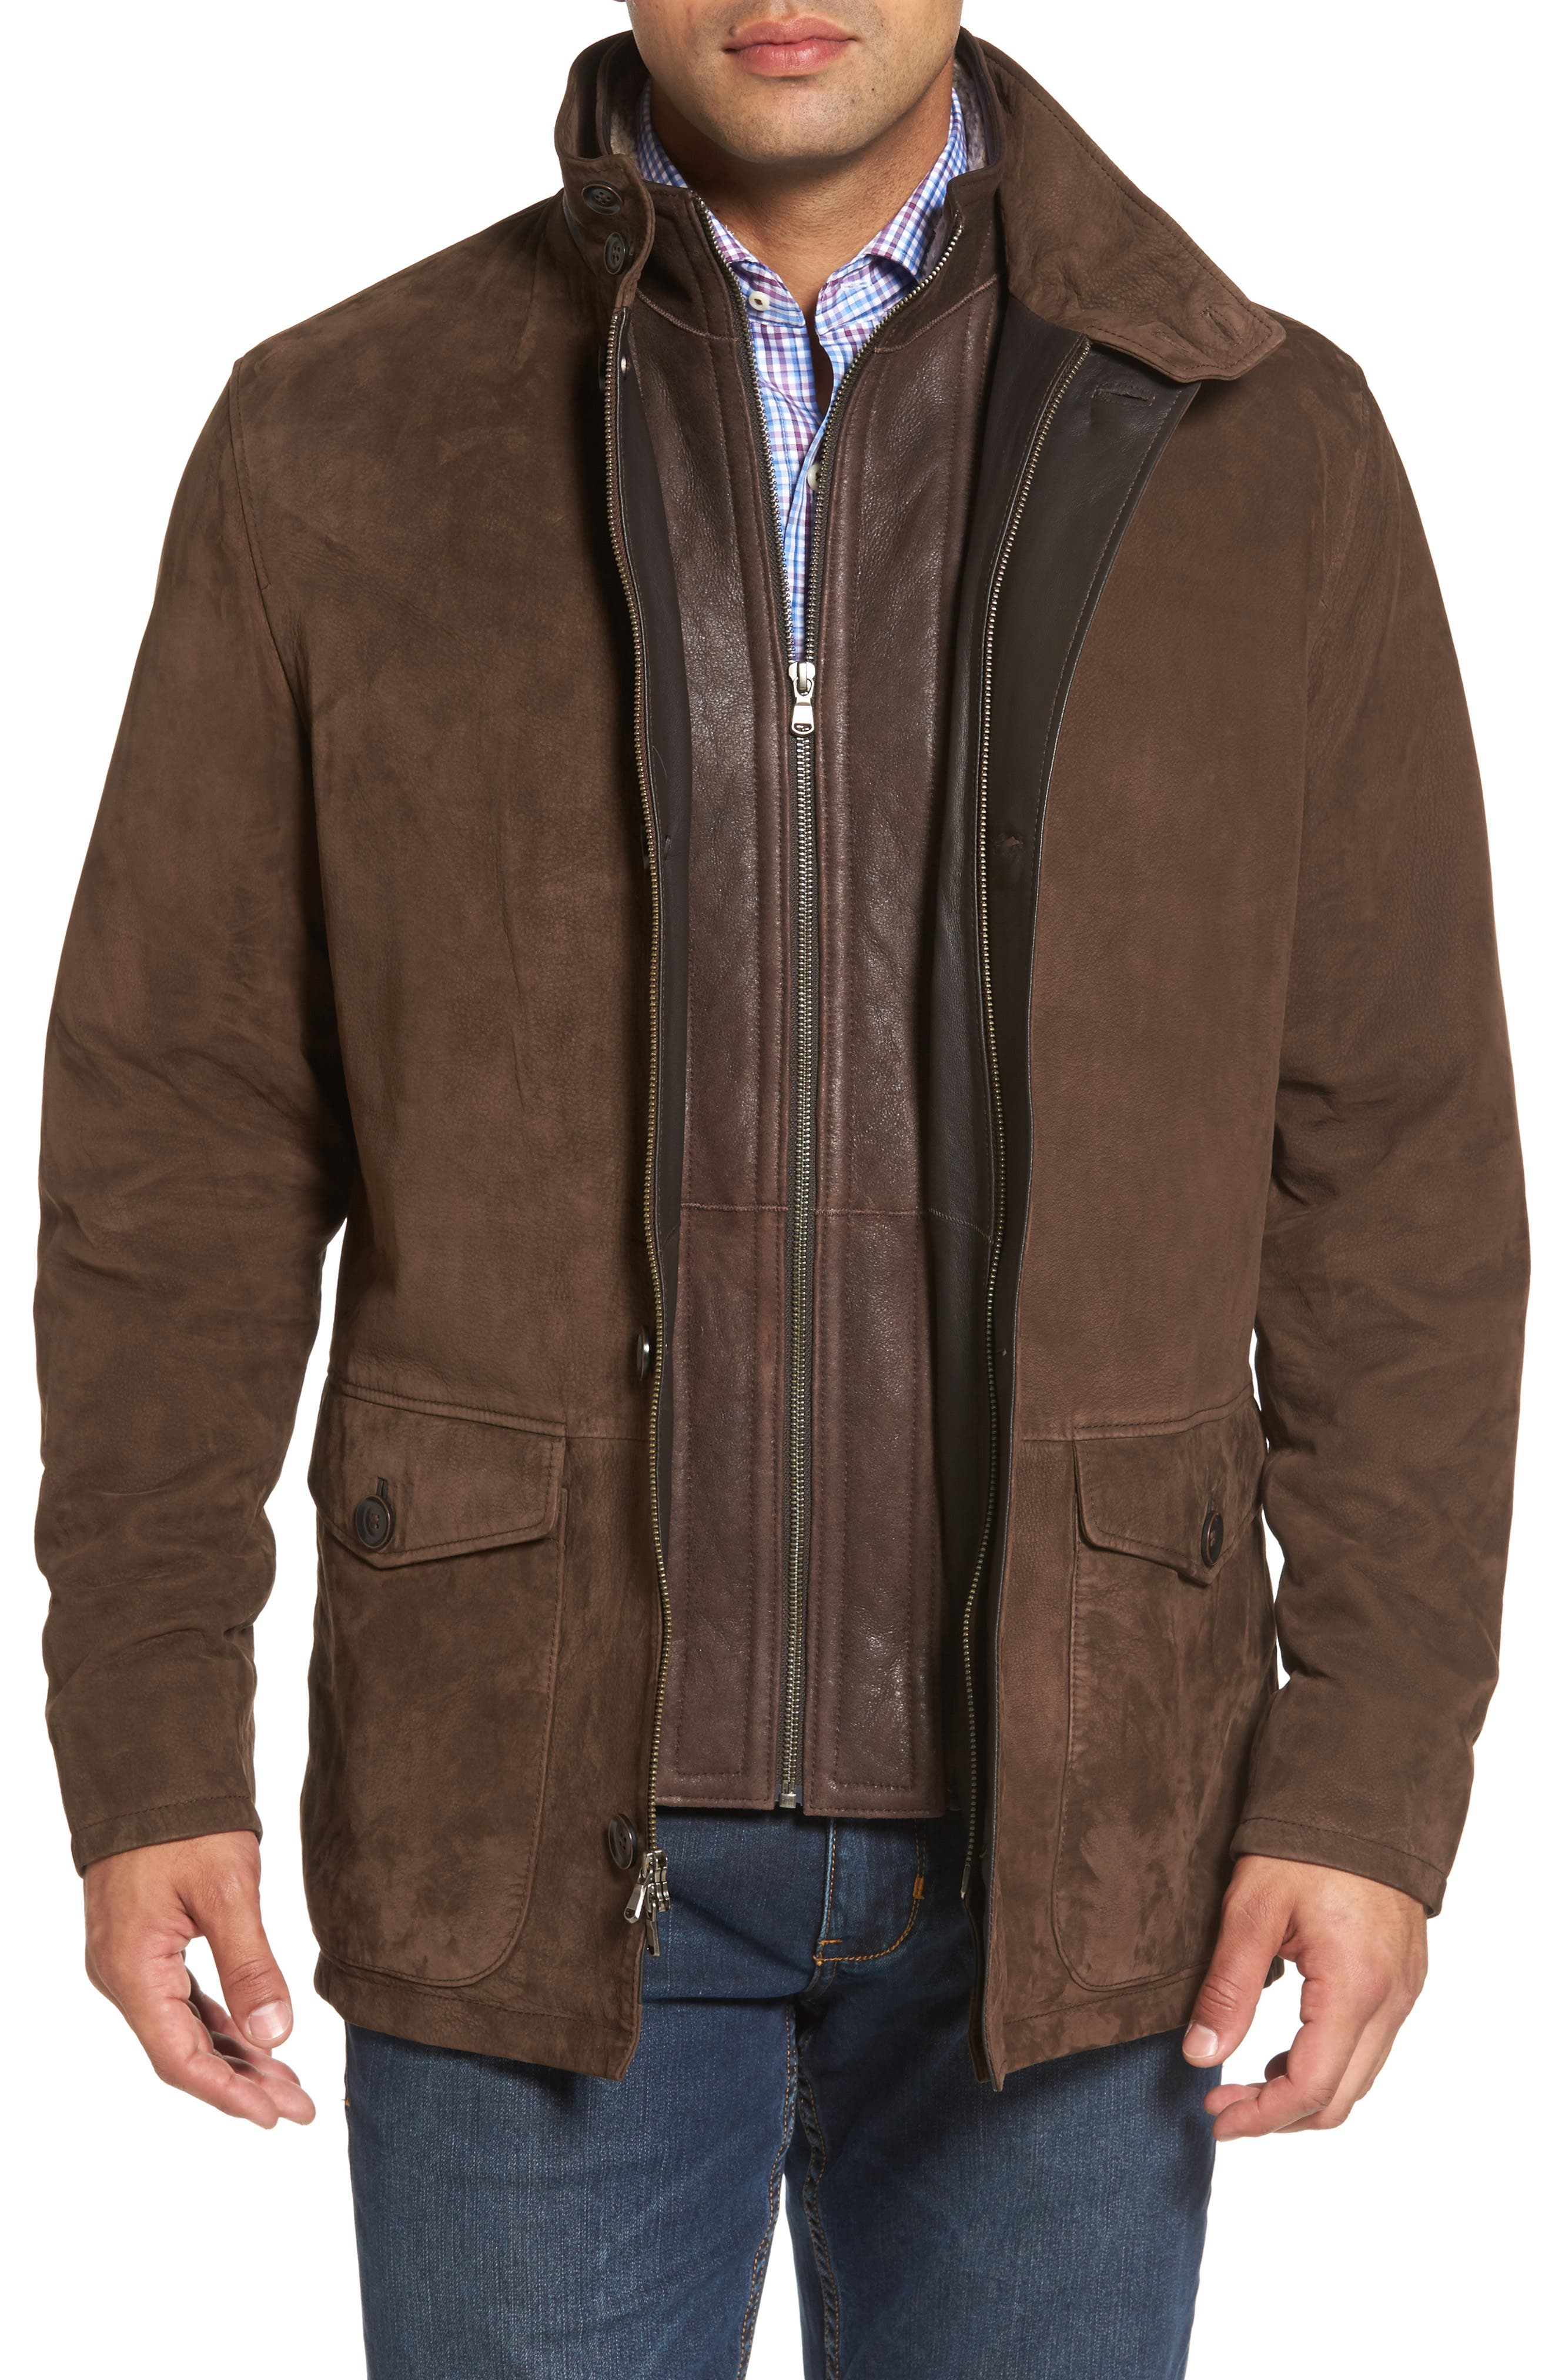 Peter Millar Steamboat Leather Jacket with Genuine Shearling Lined Bib